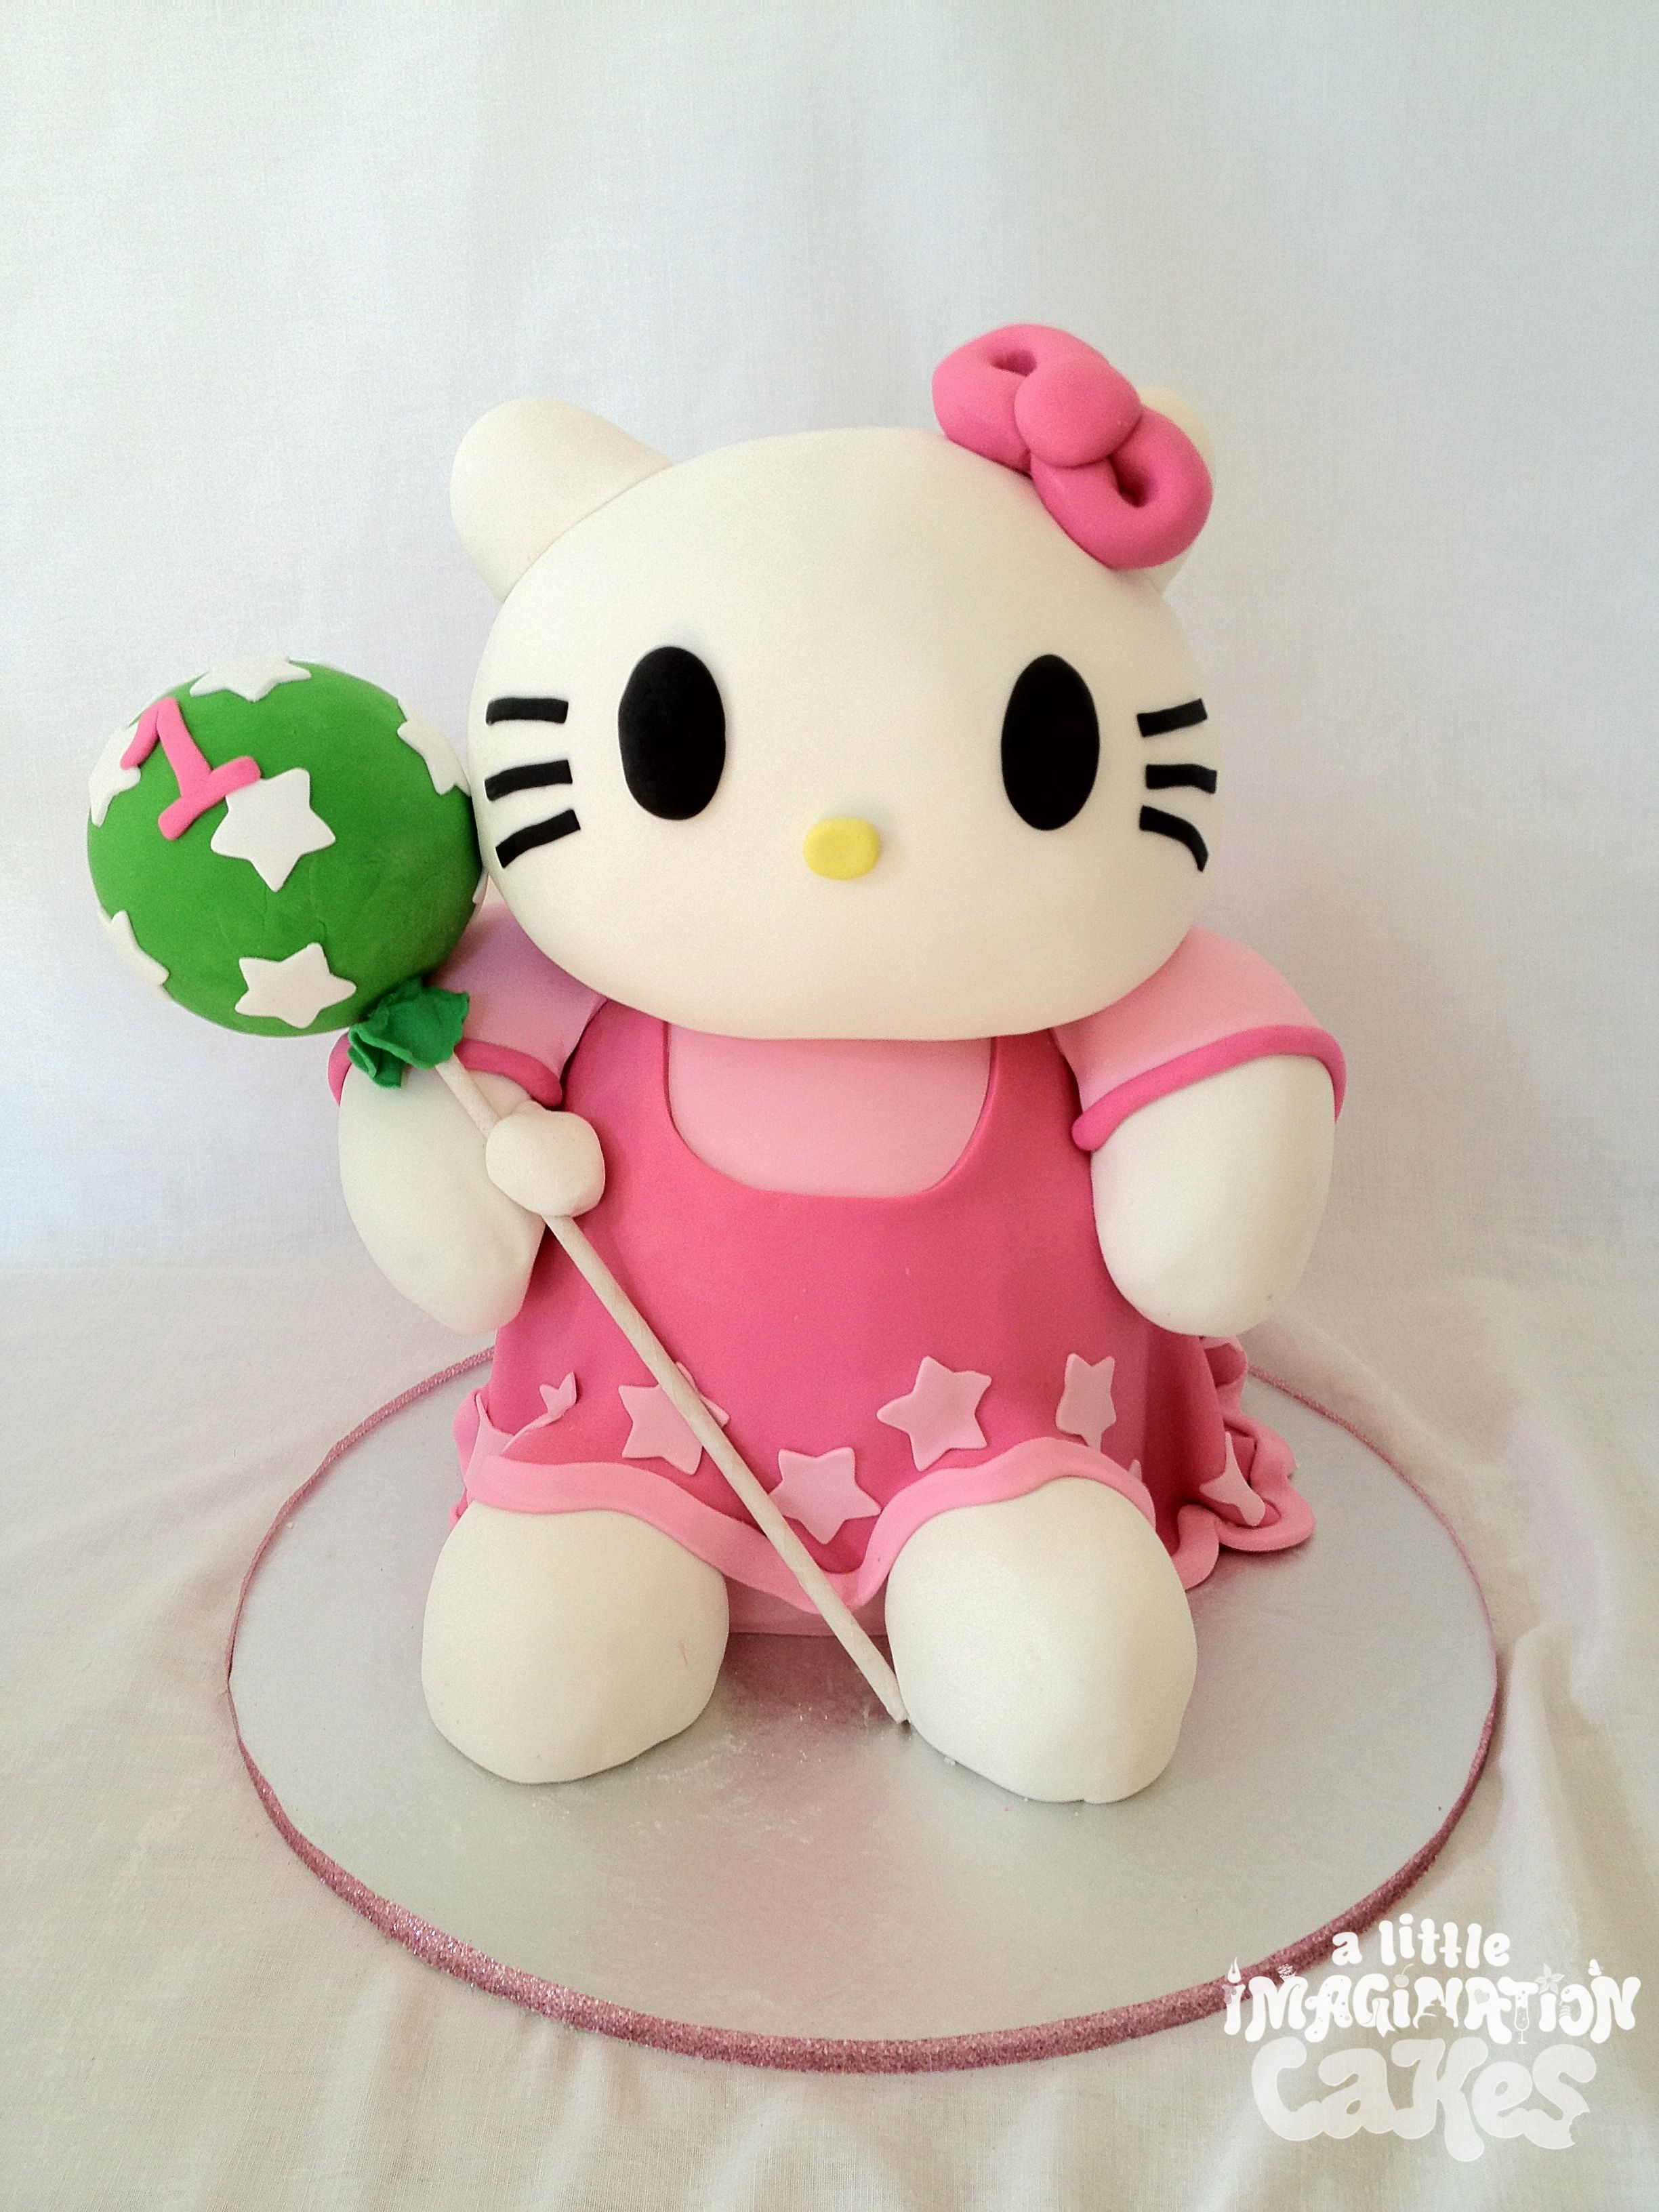 Super cute Hello Kitty cake by A Little Imagination Cakes 3D